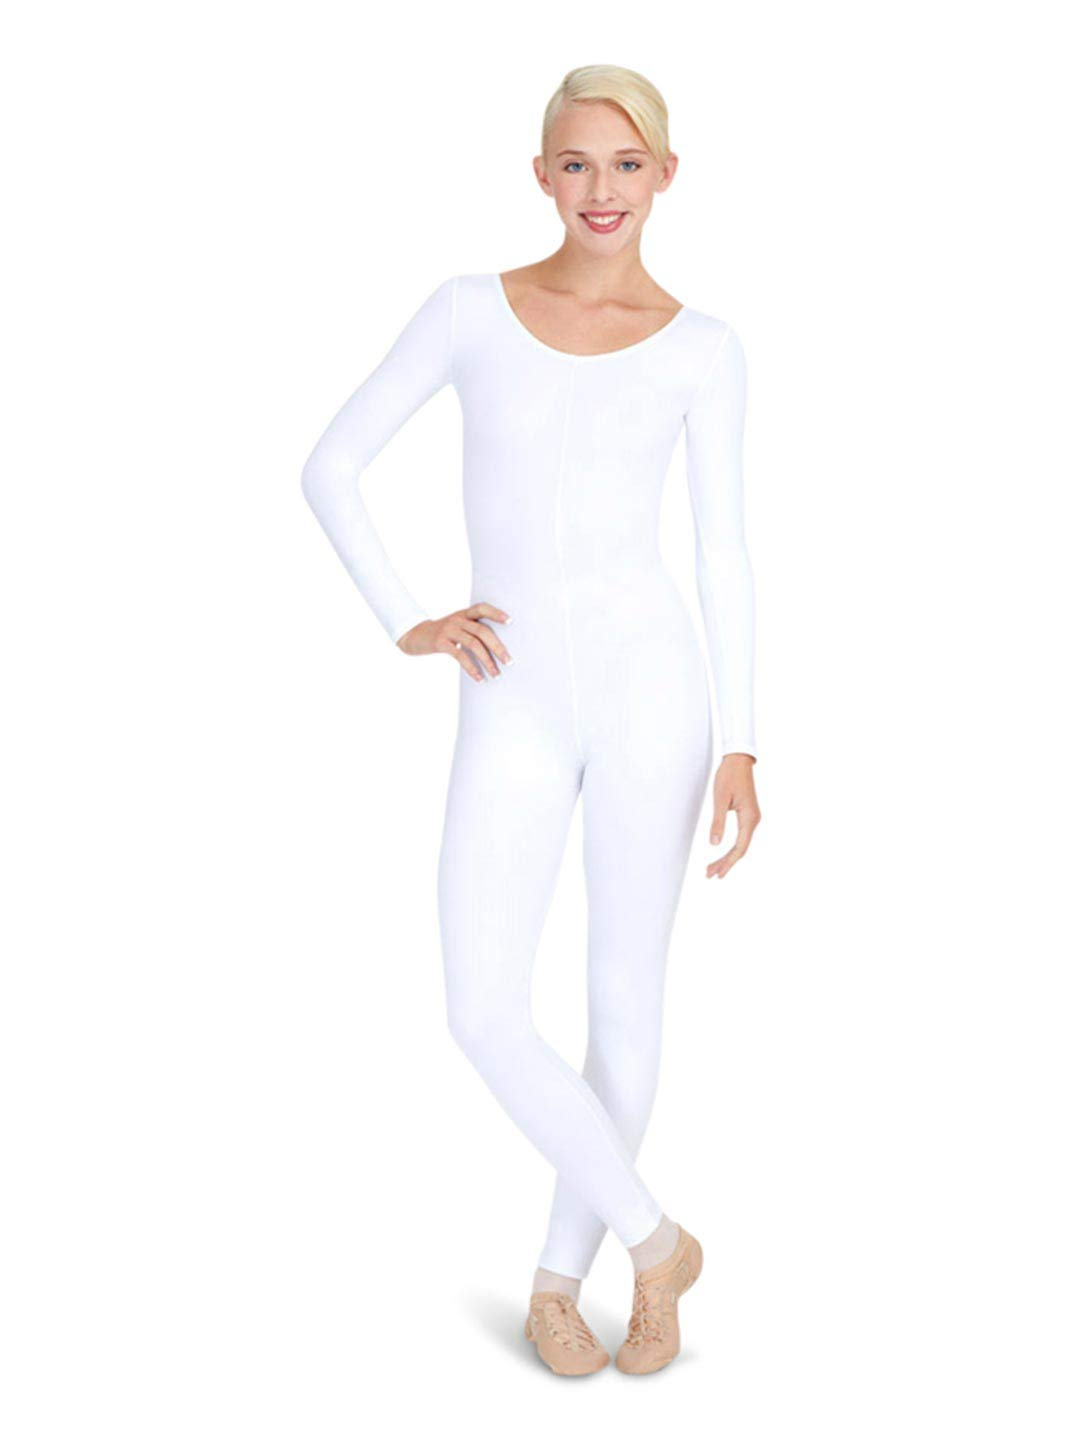 Capezio Women's Long Sleeve Unitard,White,X-Large by Capezio